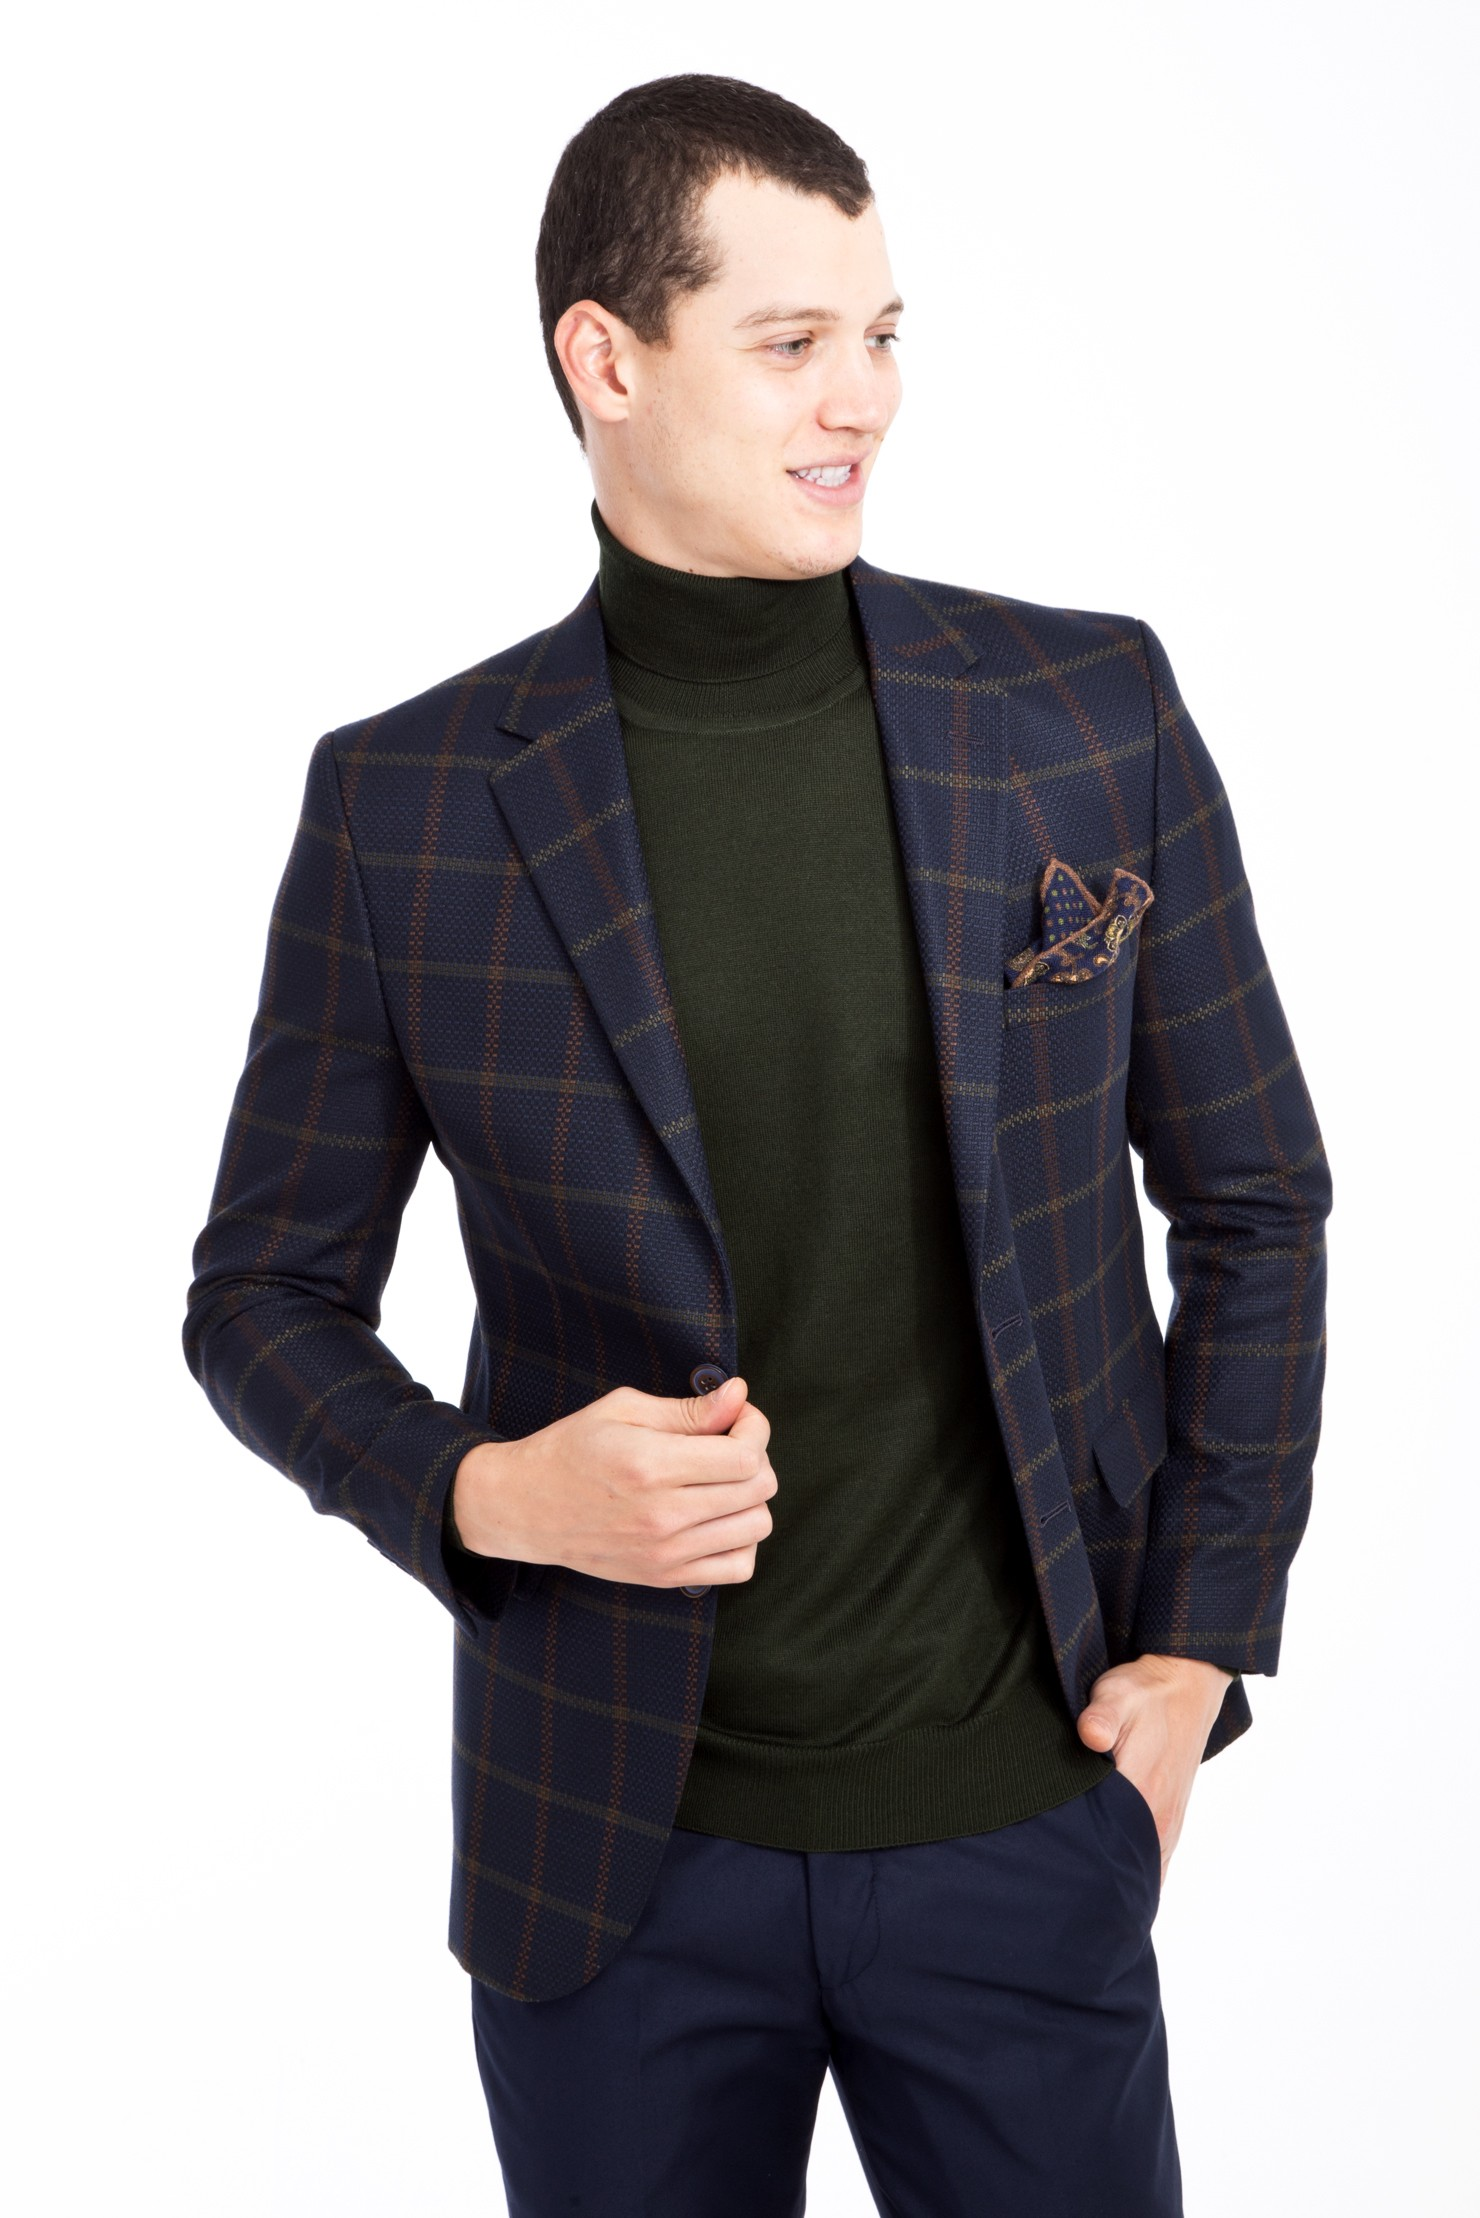 Blazer Arm-Green Made-In-Turkey Check Slim-Fit Plaid 2-Button Single-Breasted Casual title=